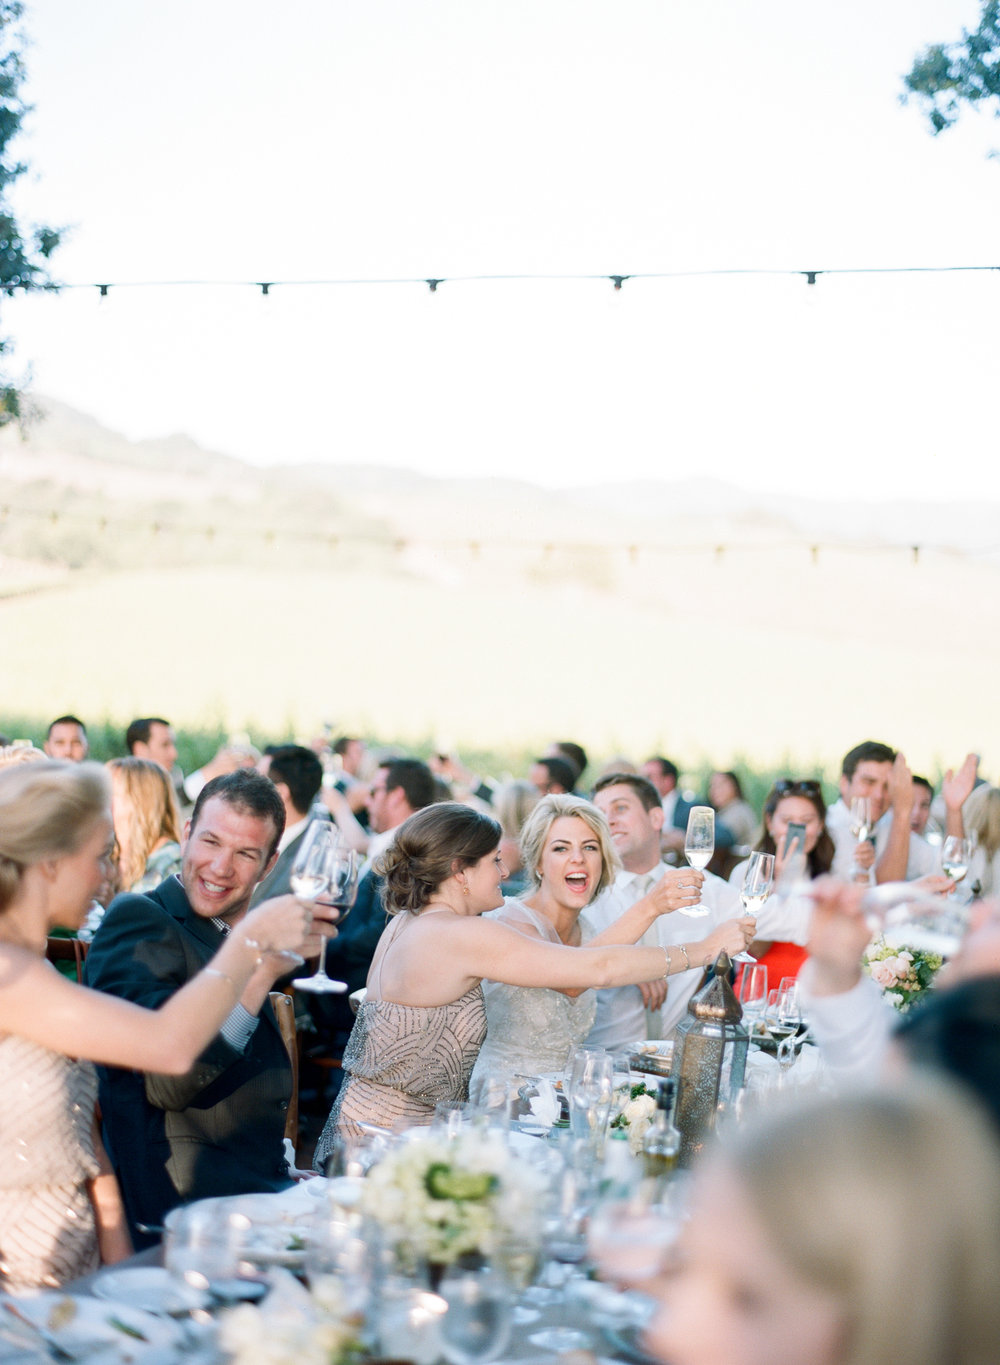 Sylvie-Gil-film-destination-wedding-photography-kunde-winery-napa-shabby-chic